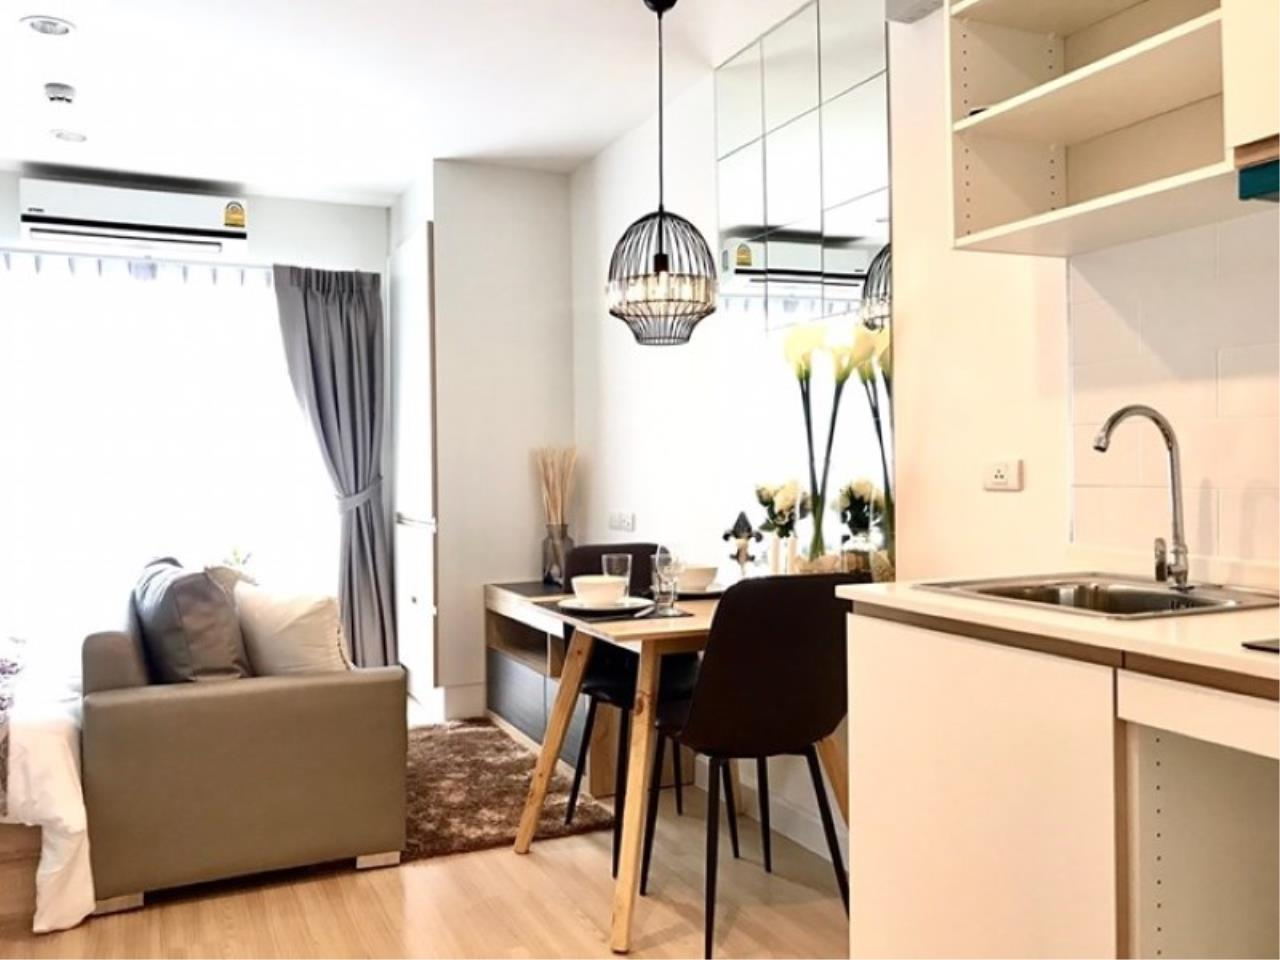 Century21 Skylux Agency's The Nest Sukhumvit 22 / Condo For Rent / 1 Bedroom / 25 SQM / MRT Queen Sirikit National Convention Centre / Bangkok 4